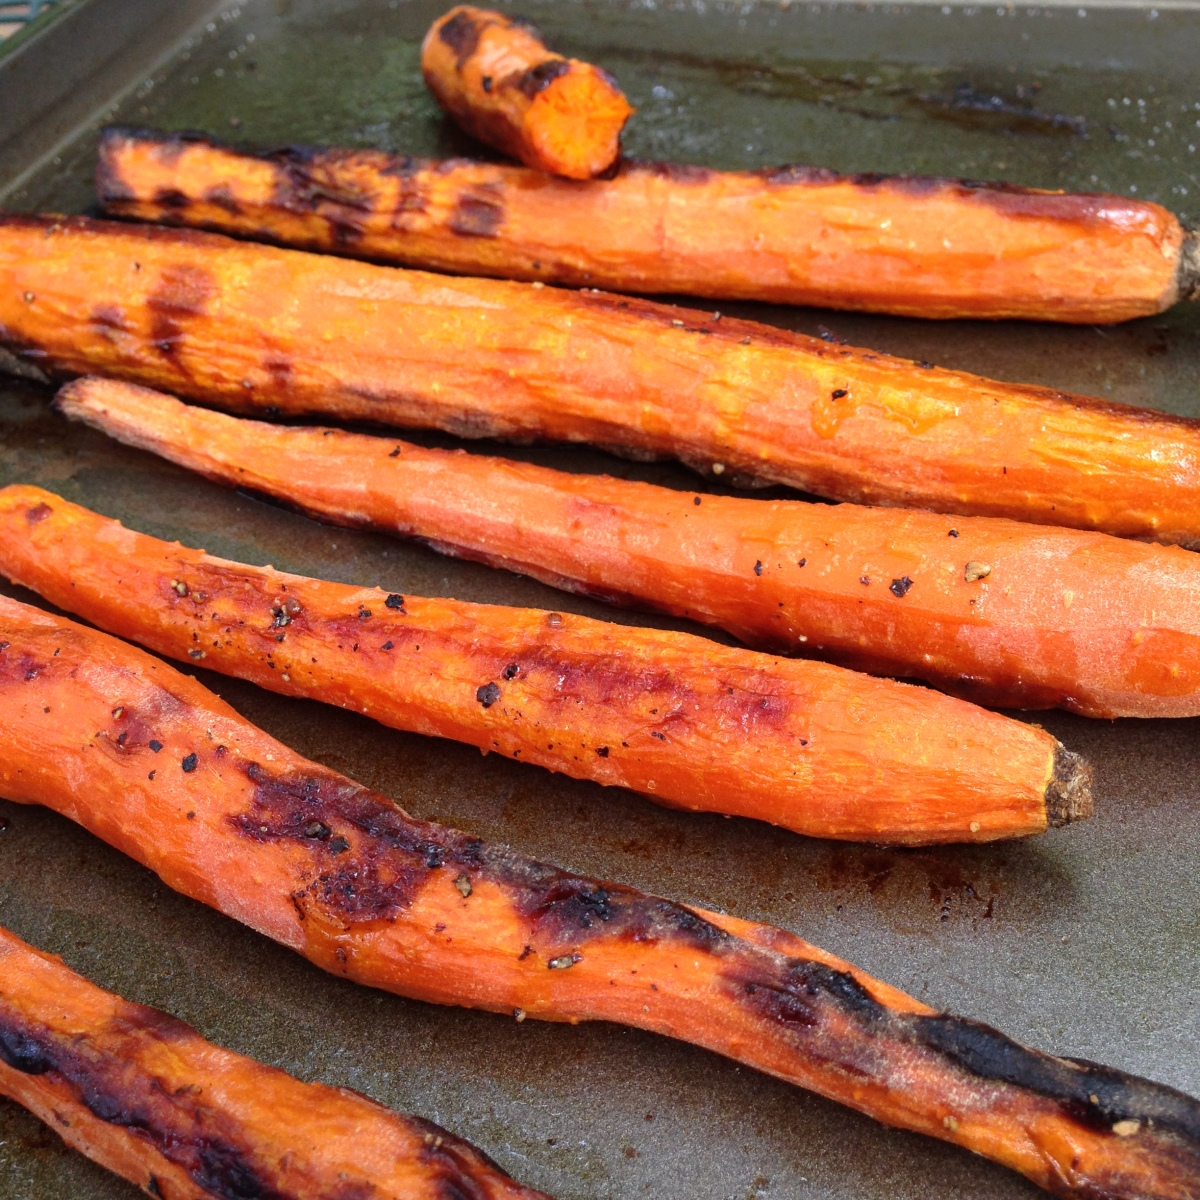 Salt and Pepper Roasted Carrots